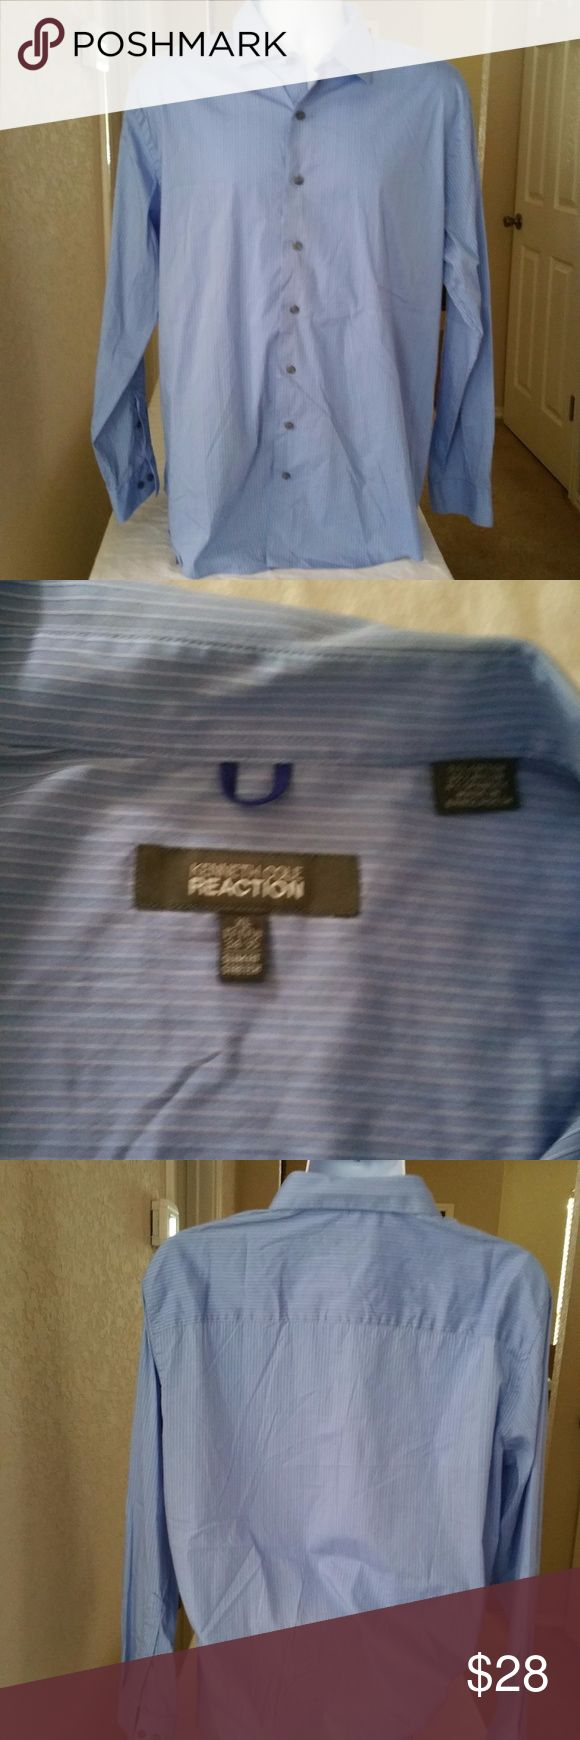 """Kenneth Cole Reaction men's slim fit Shirt For your consideration:   Kenneth Cole Reaction men's slim fit Stretch  blue and white stripe Button Down Dress Shirt.  Size: XL, 17- 171/2 34-35  Material: 71% cotton, 25% Nylon, 4% Spandex.  Measurements approximately:  Sleeve 24.5""""  Underarm to Underarm: 25""""  Front length from shoulder to hem: 30"""" Kenneth Cole Reaction Shirts Dress Shirts"""